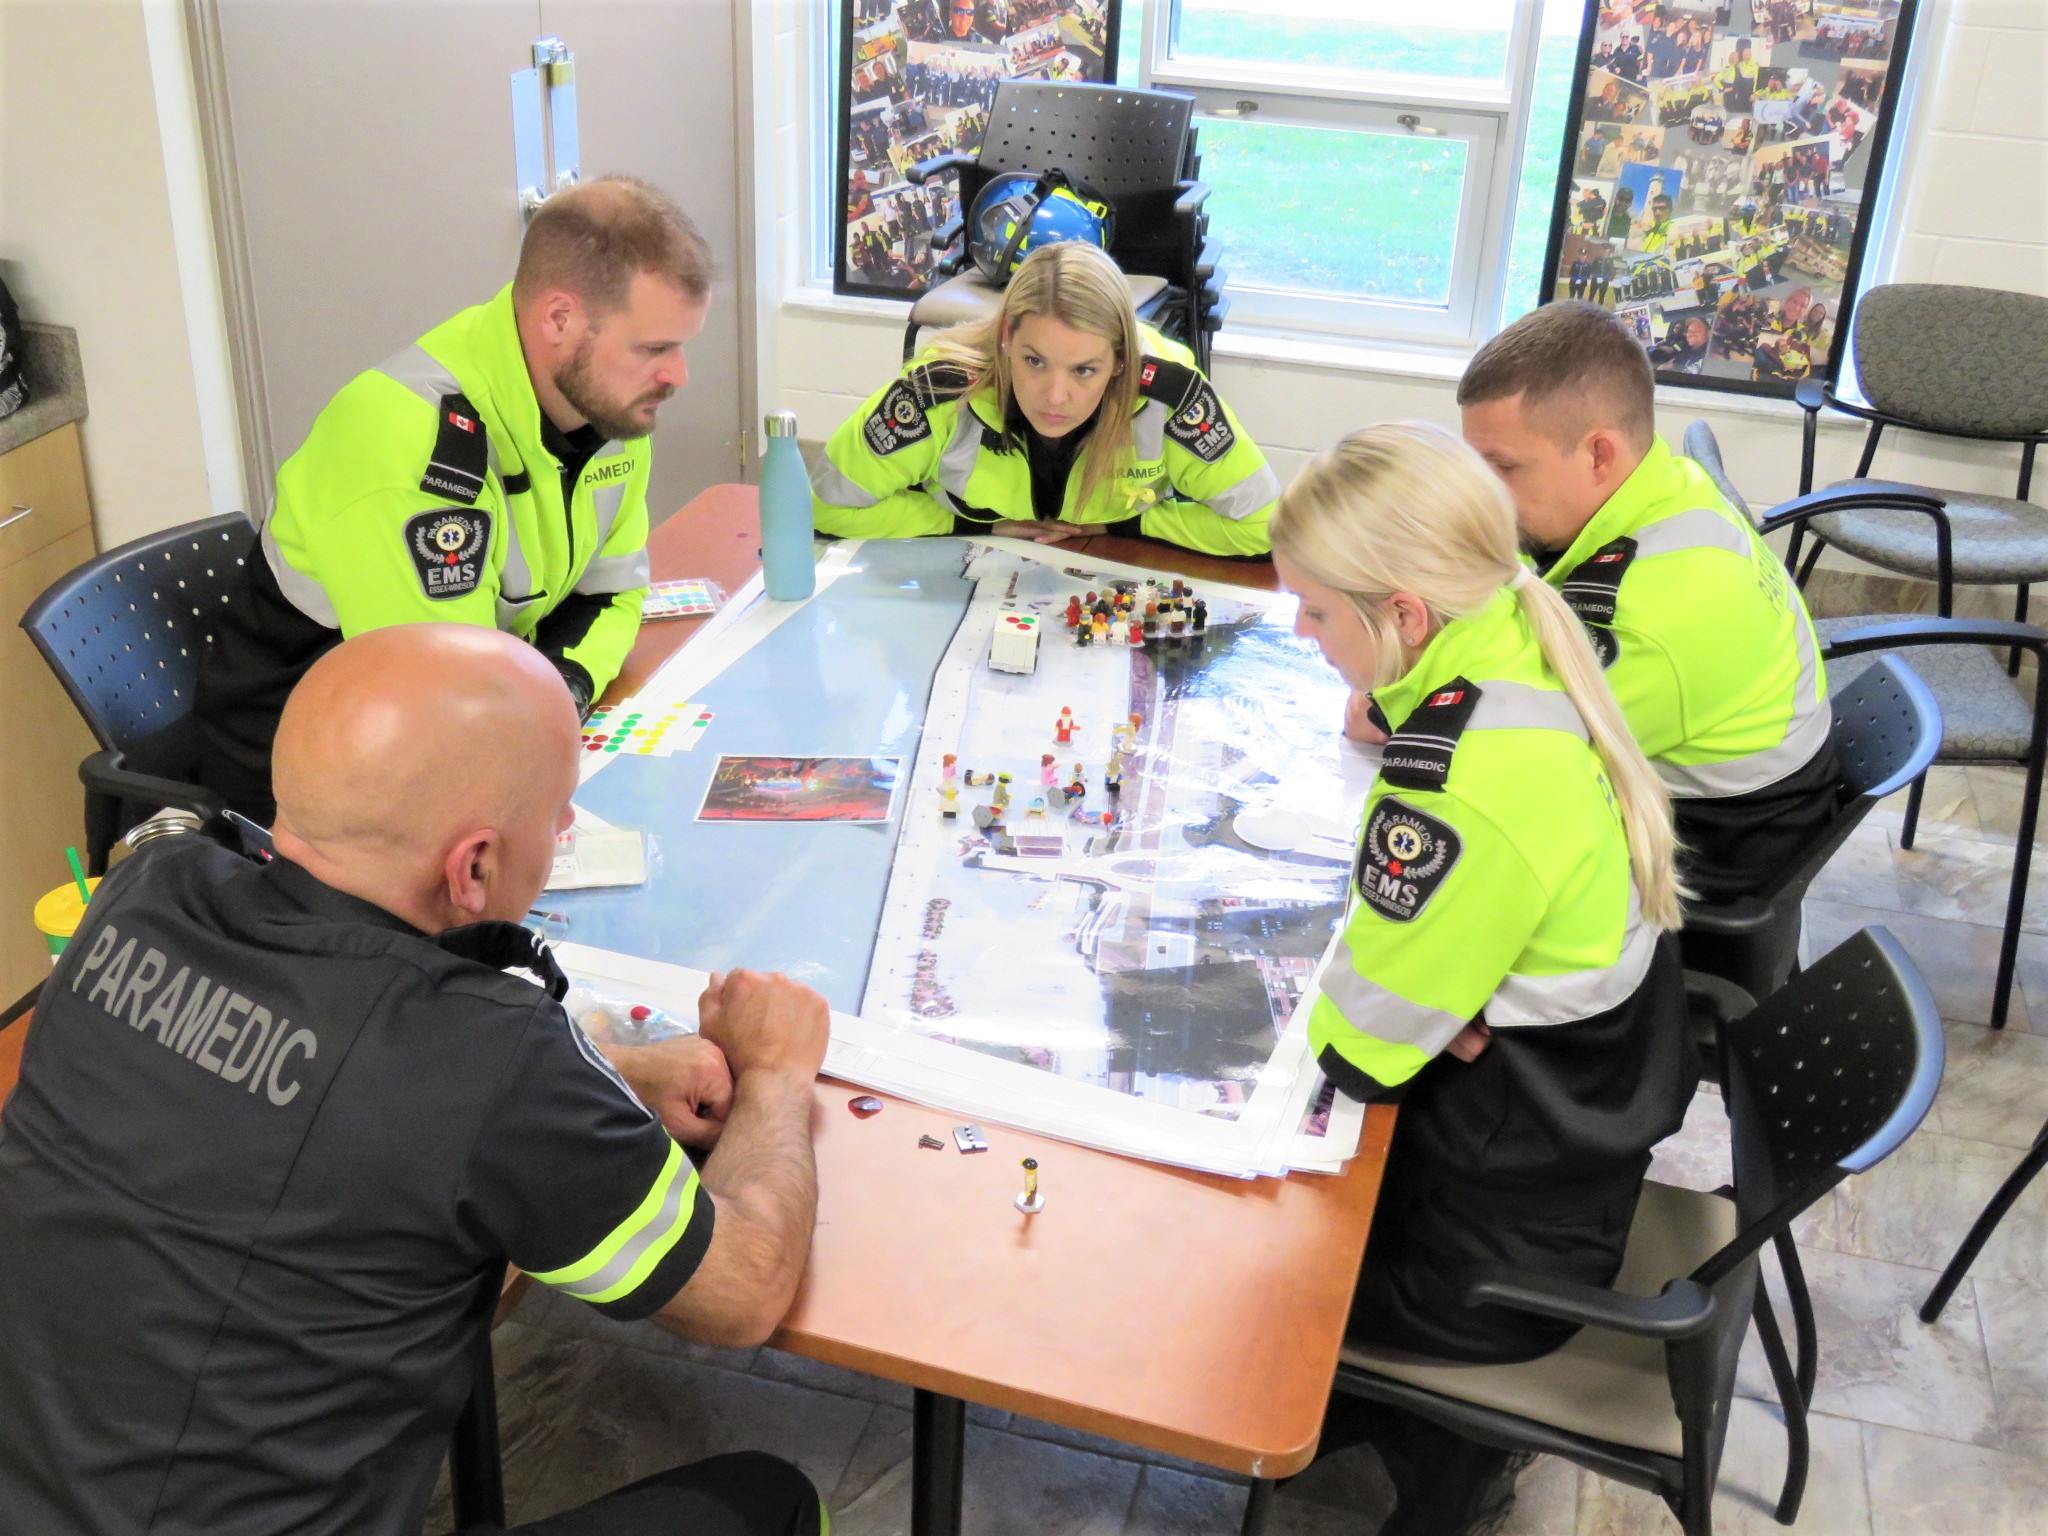 Paramedics gather around a table topped with a map and small Lego pieces.